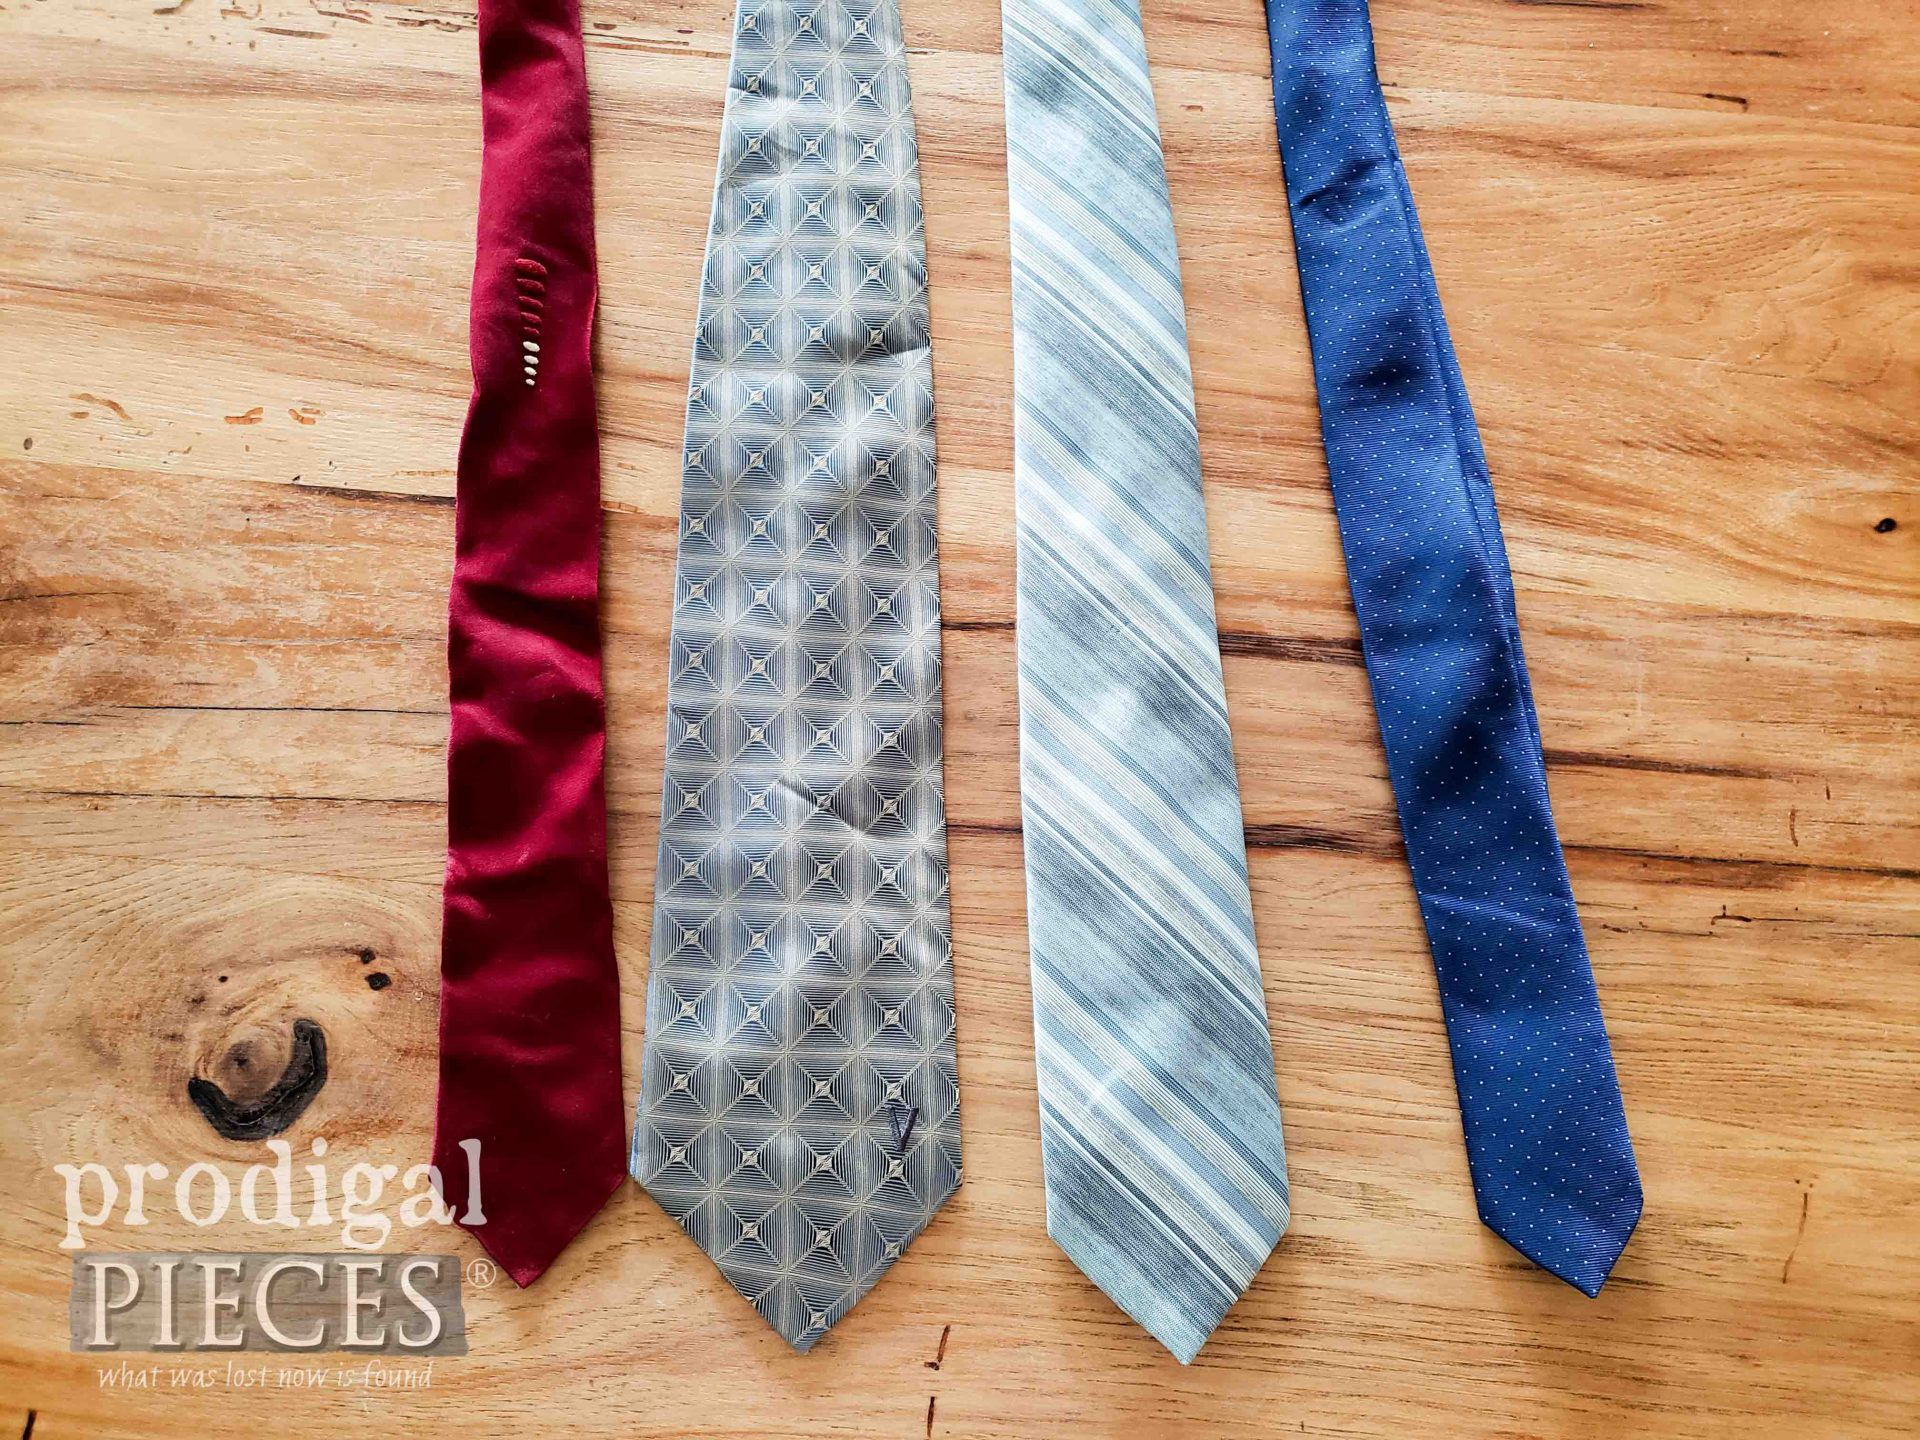 Thritfted Neckties Before Upcycle by Larissa of Prodigal Pieces | prodigalpieces.com